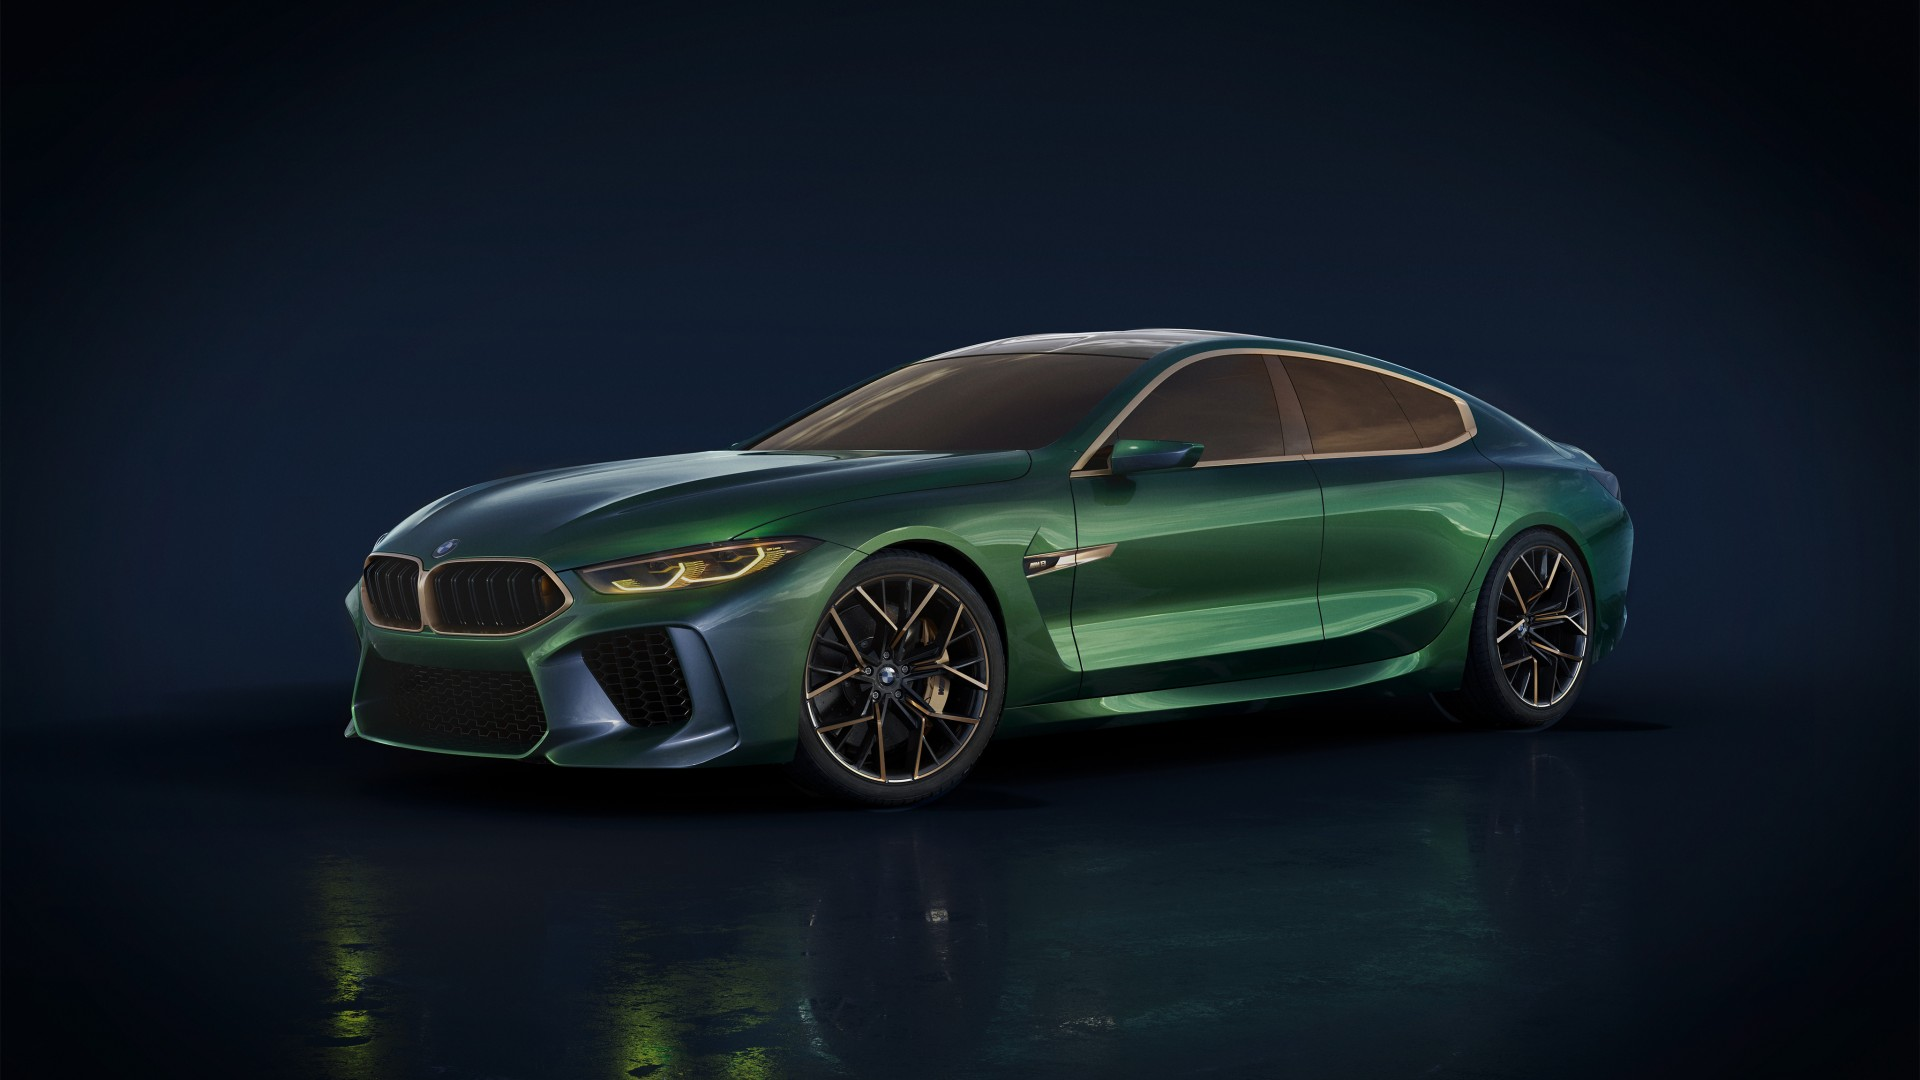 2018 Bmw Concept M8 Gran Coupe 4k 3 Wallpaper Hd Car